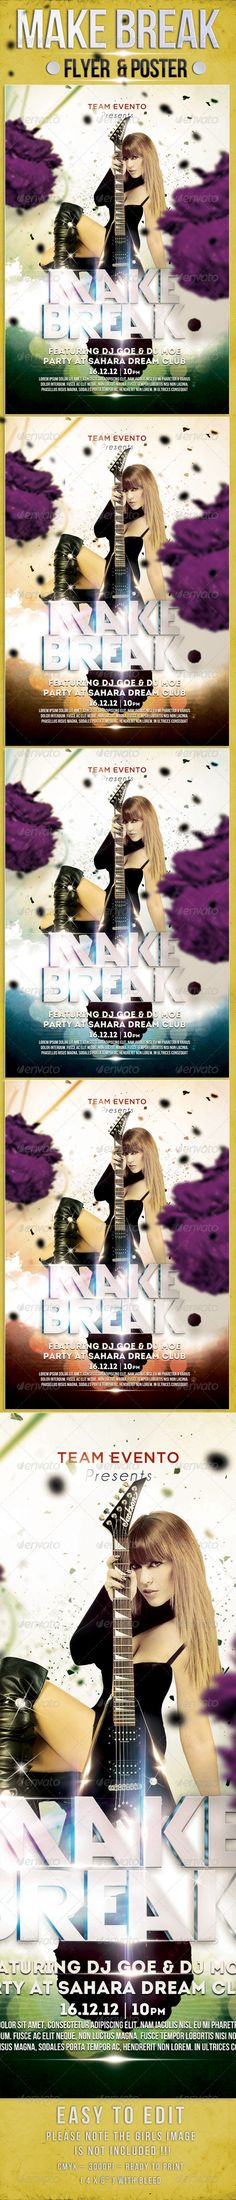 Make Break Party Flyer Template